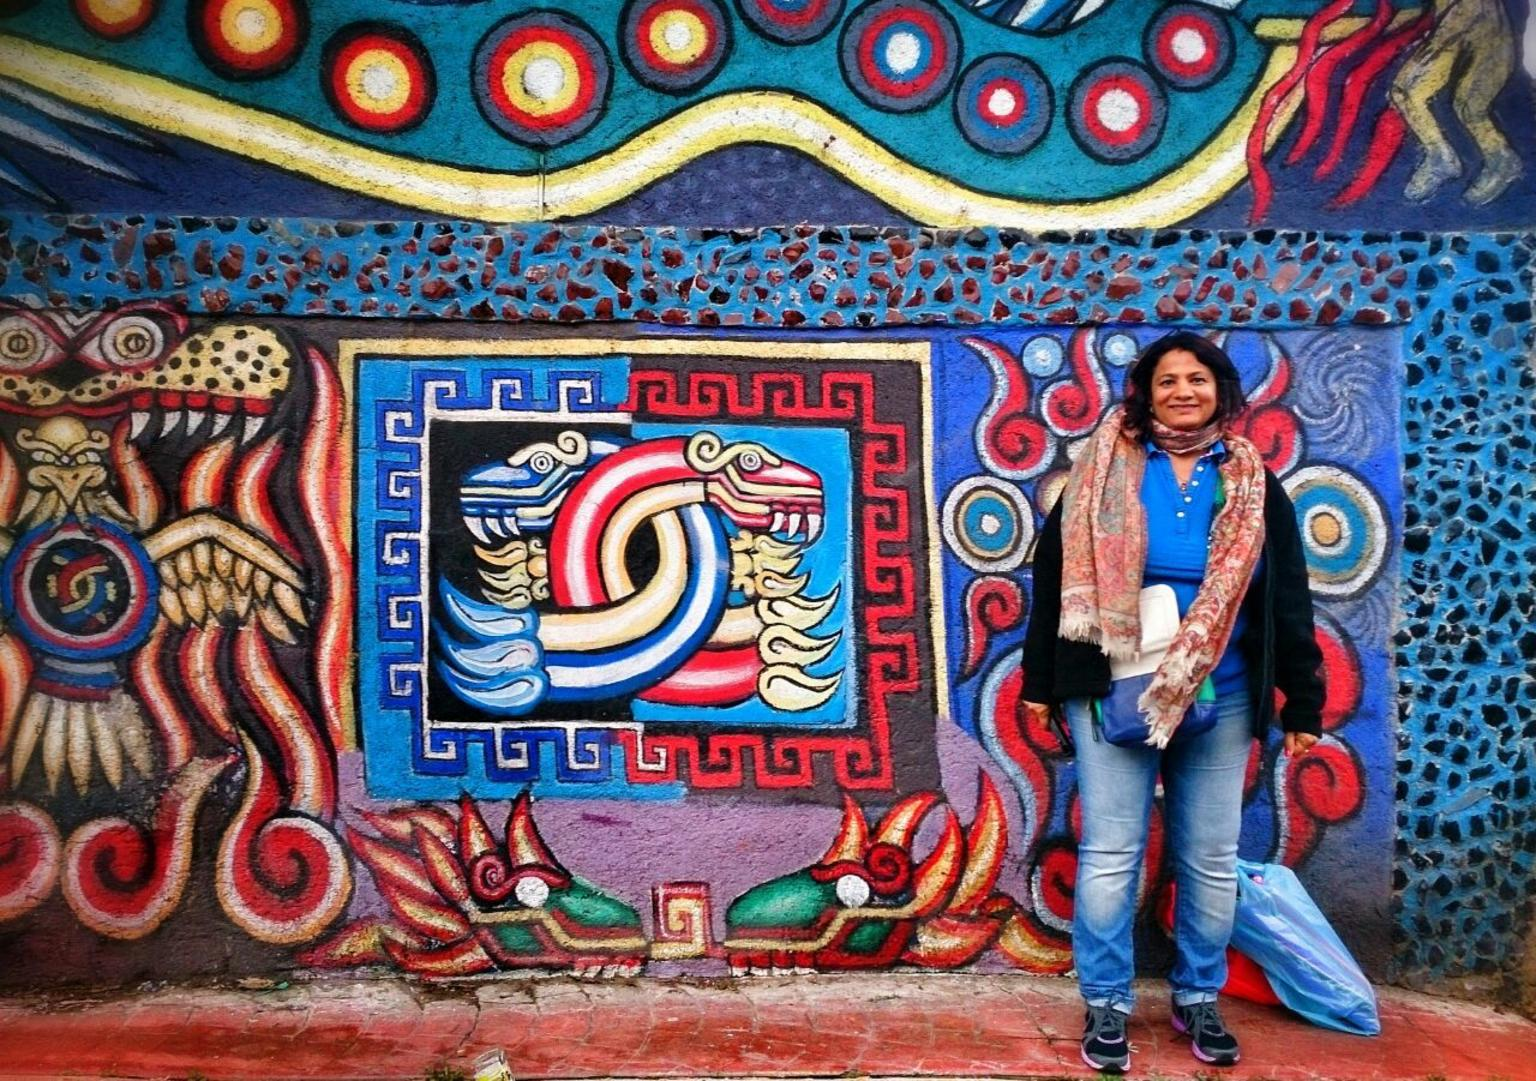 MORE PHOTOS, Experience Mexico City: Teotihuacan Day-Trip & Dinner with the Locals